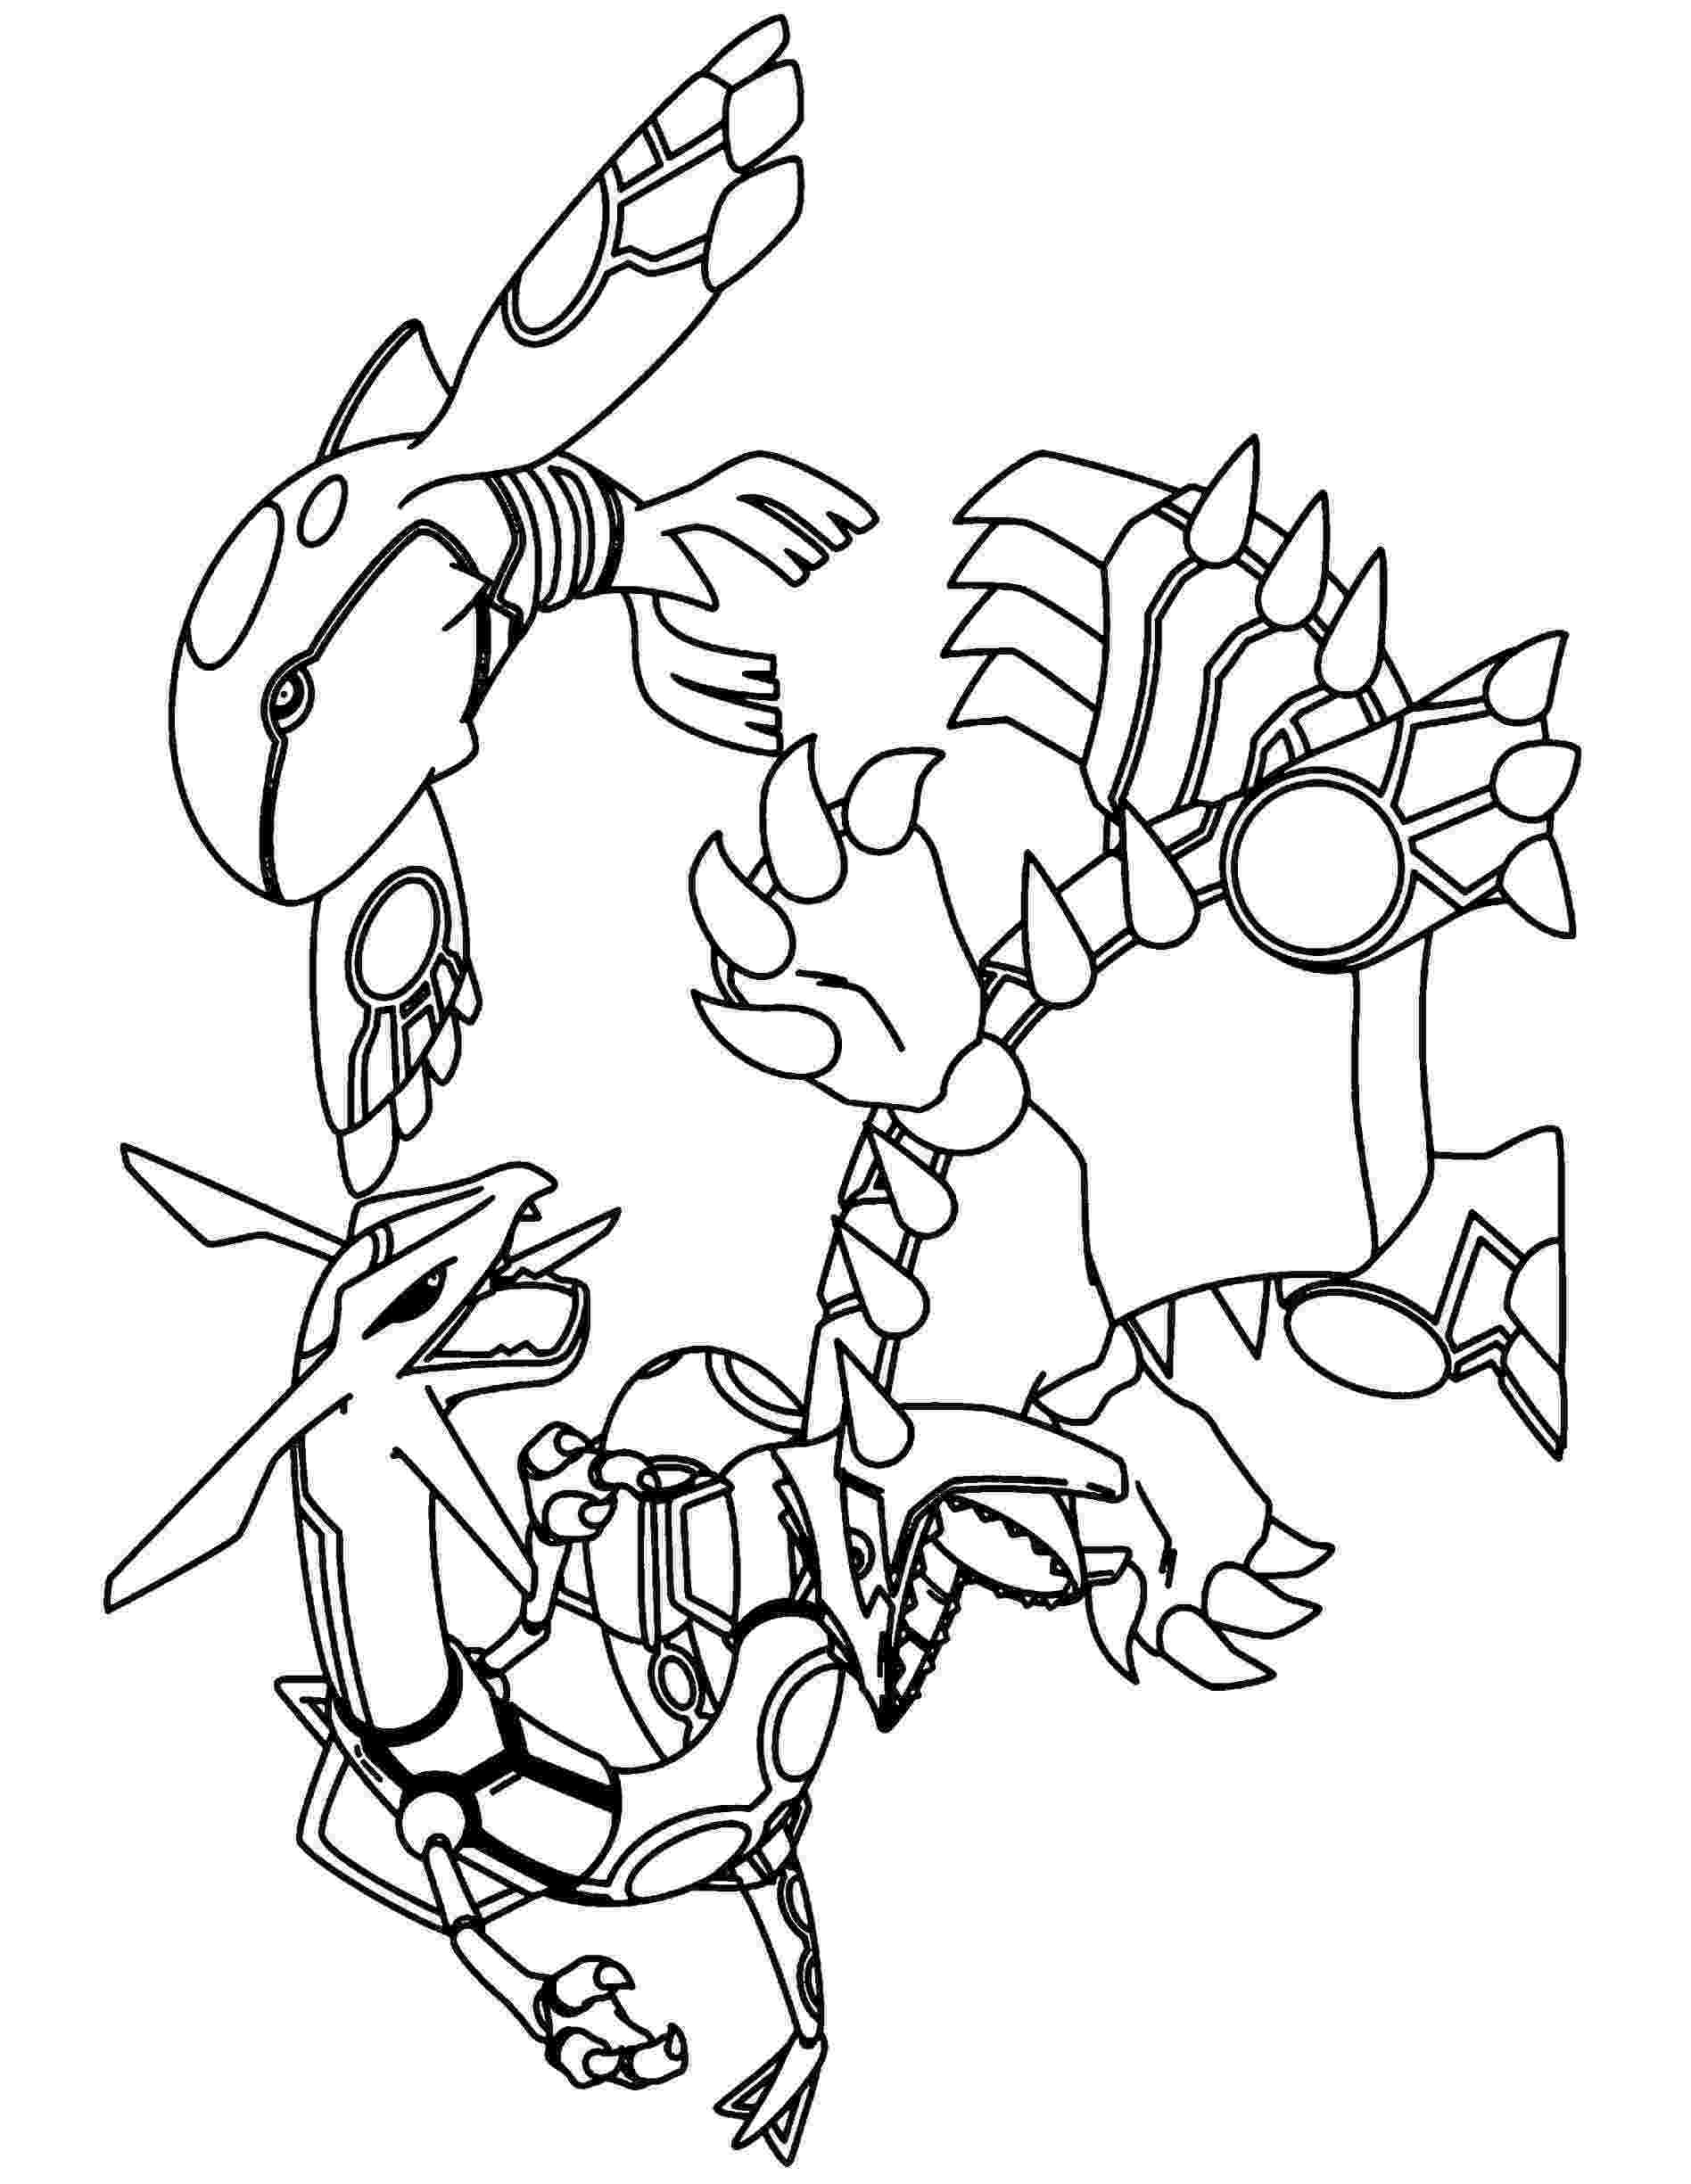 primal groudon coloring page primal groudon by penguinartistics on deviantart primal coloring groudon page